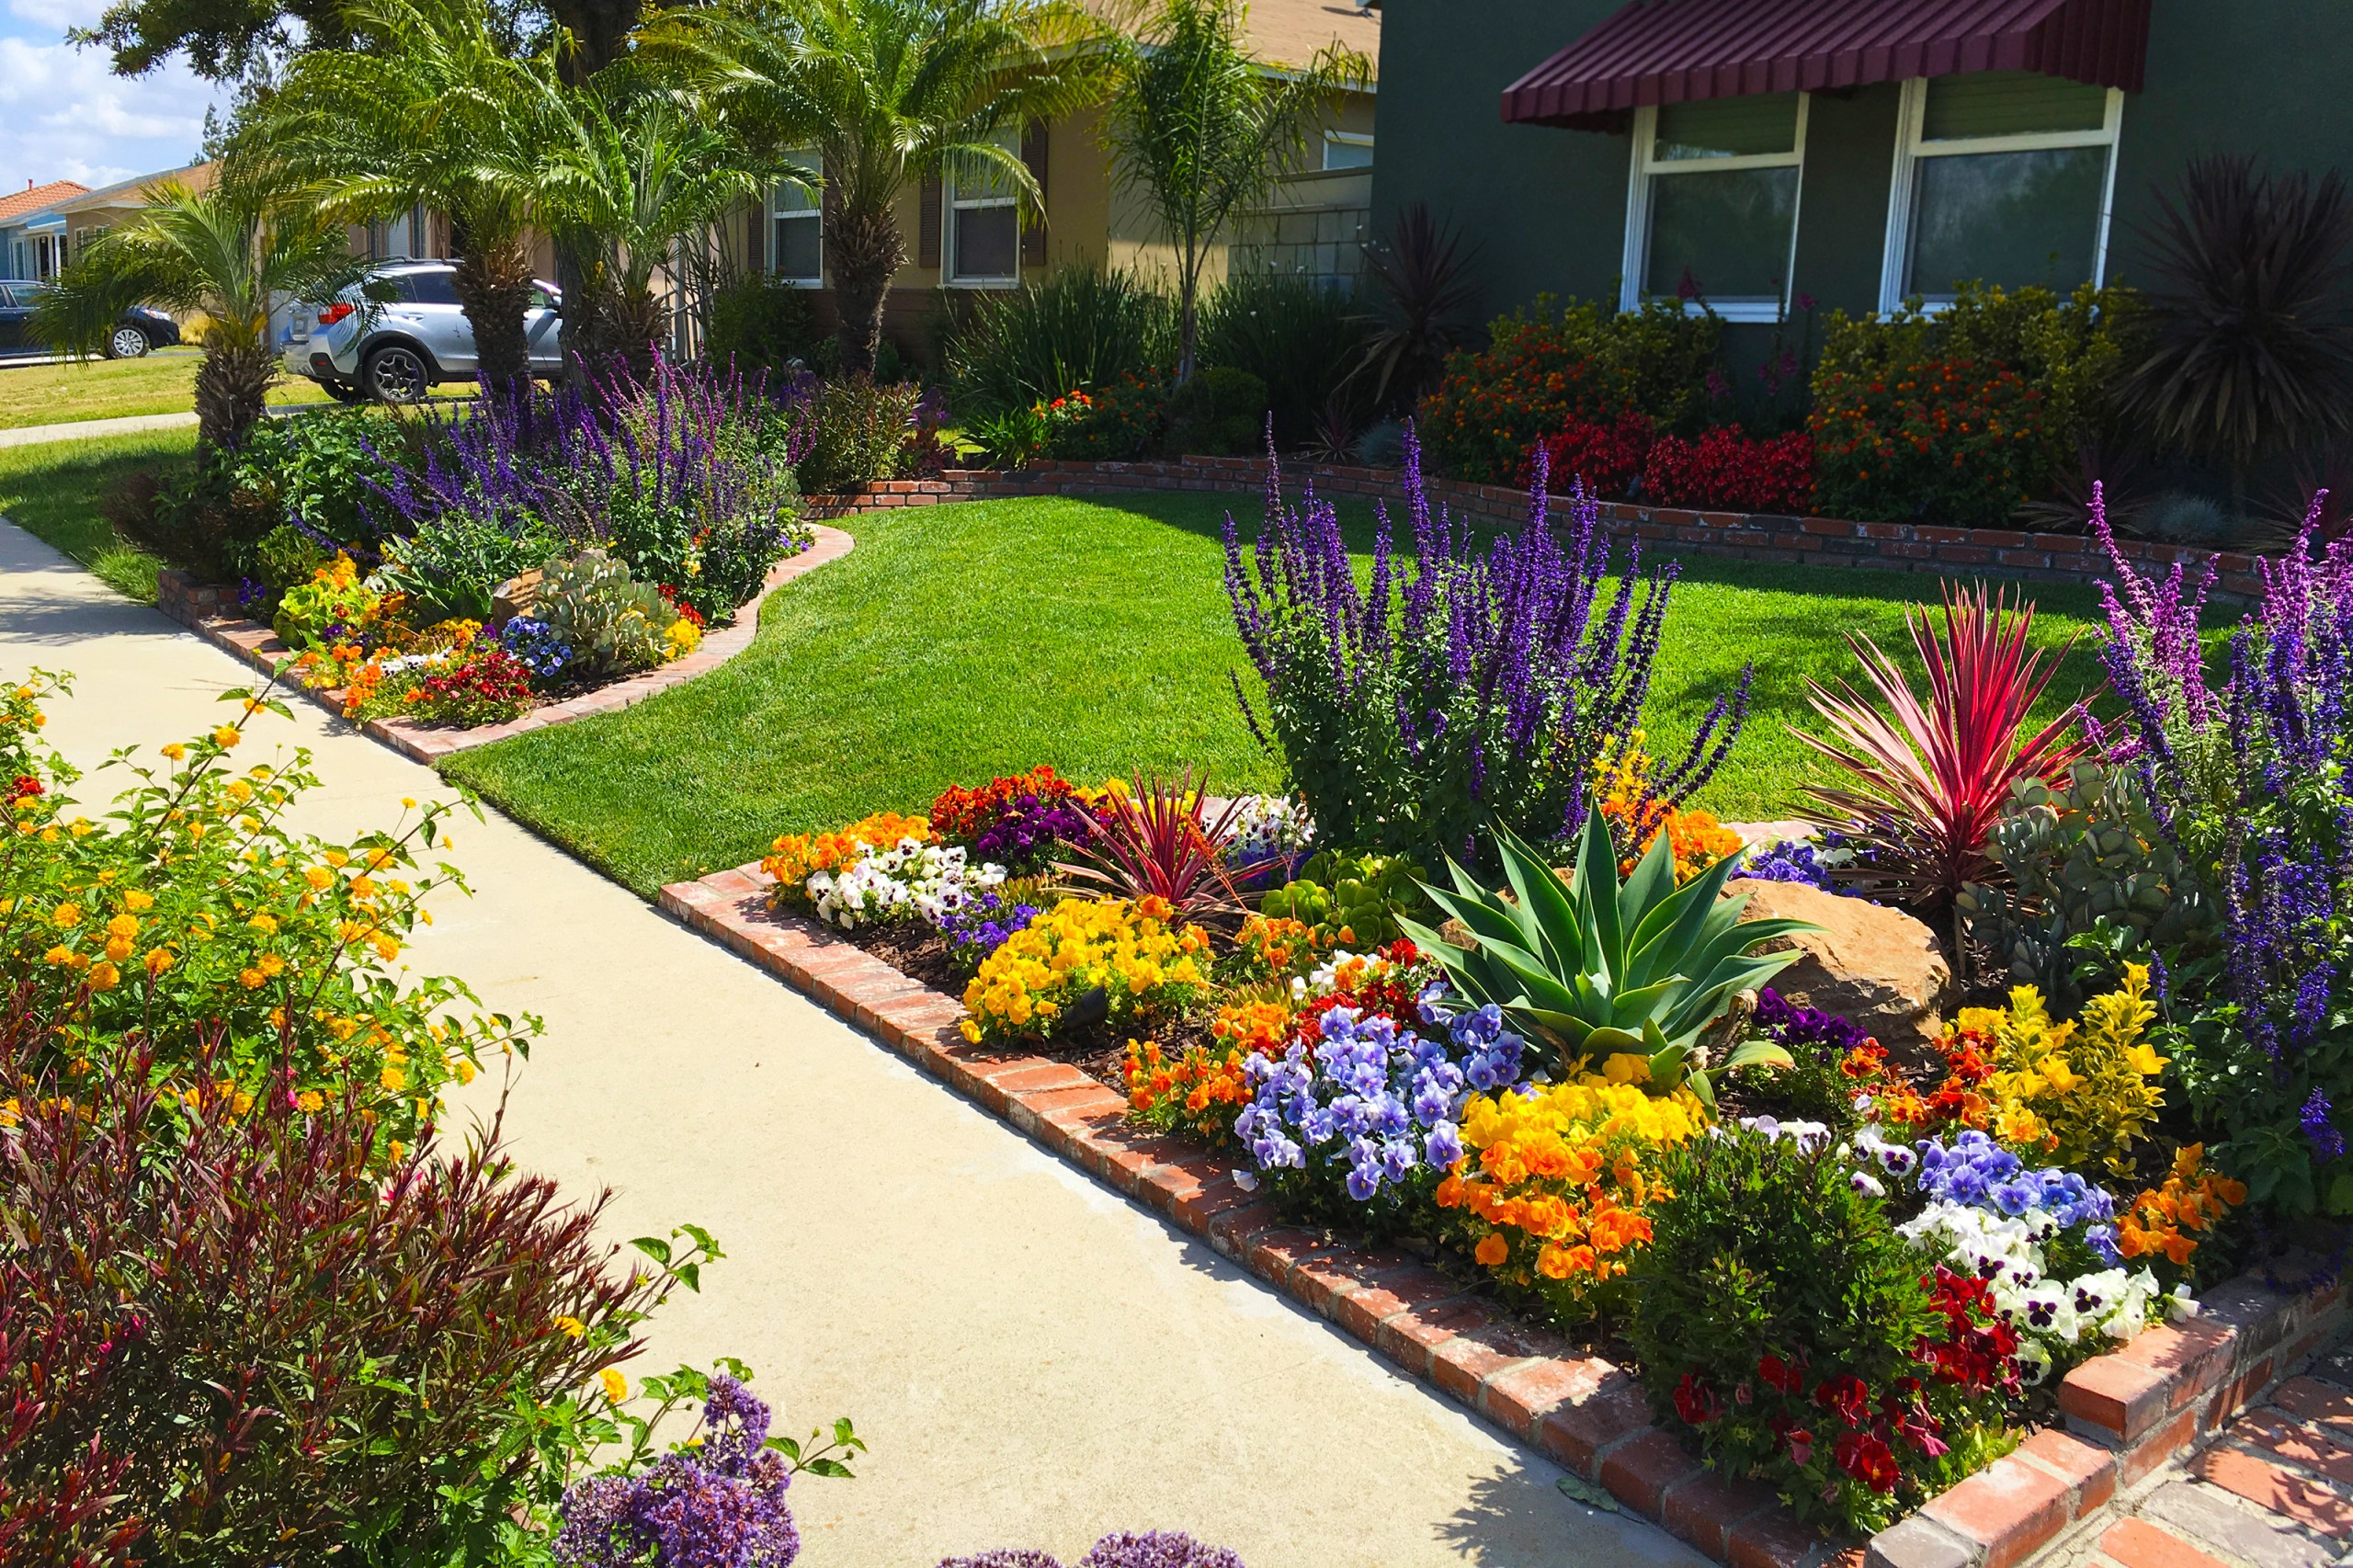 Front Yard Landscaping Ideas for Curb Appeal | HouseLogic on Backyard Landscaping Near Me id=84153